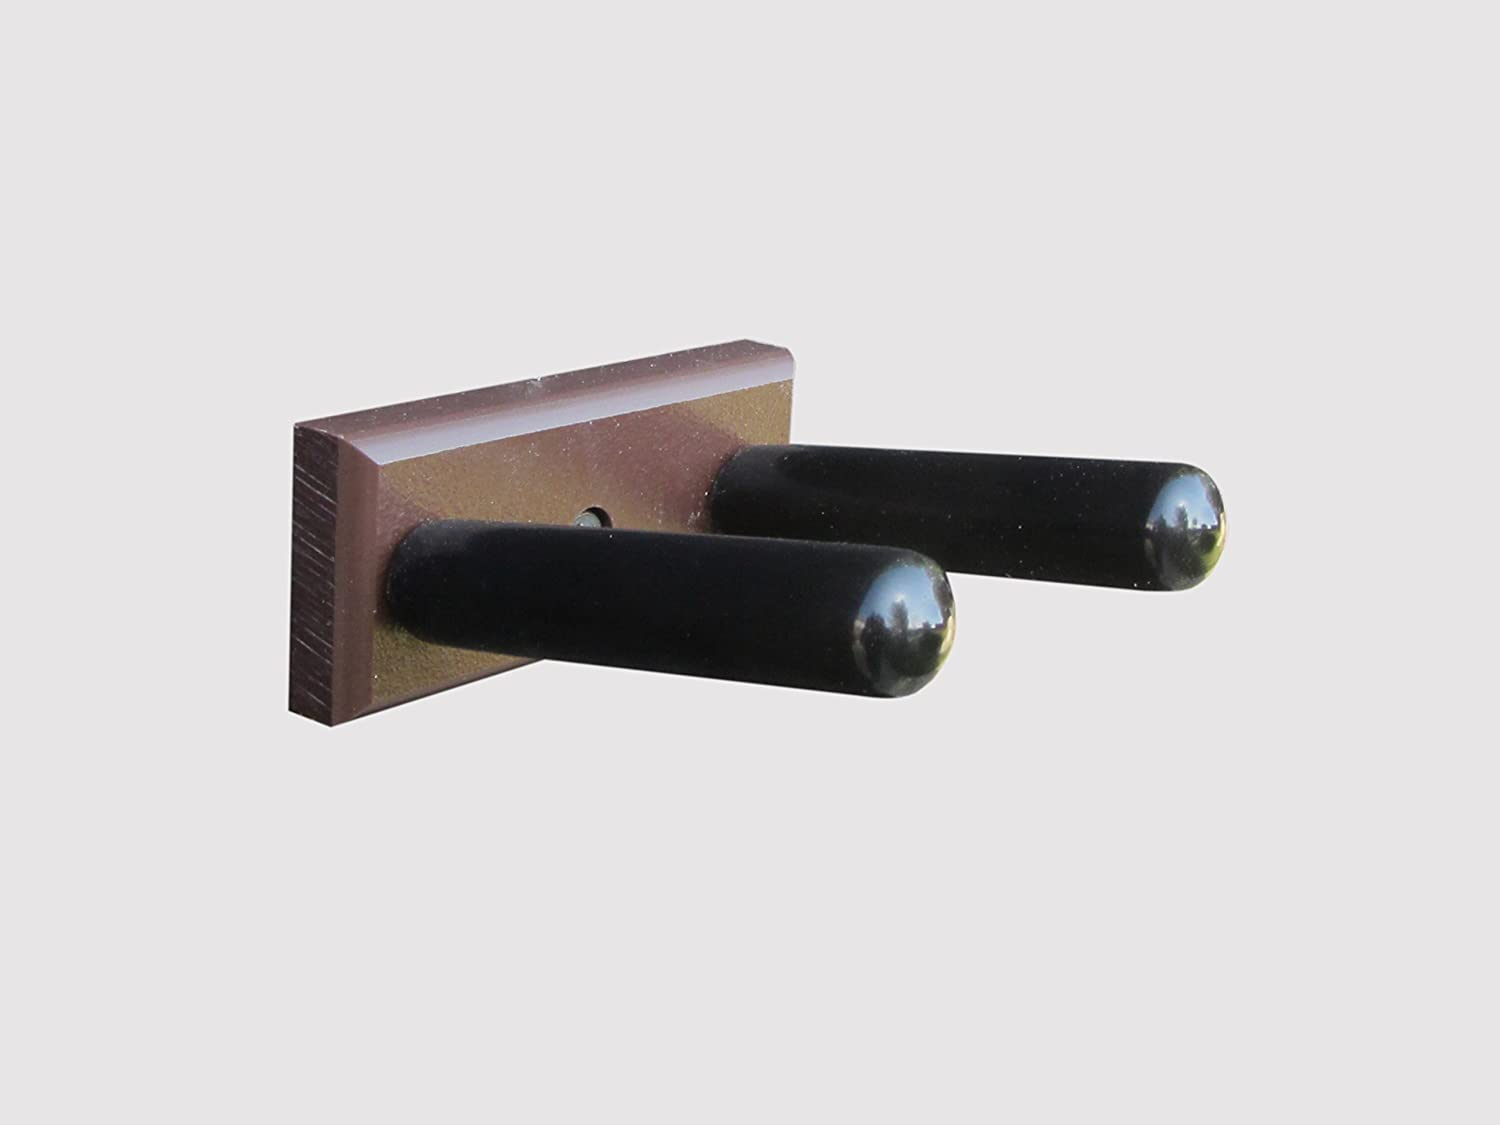 Vertical Sword Display Mount (Made in the USA) (Black) KR Ideas